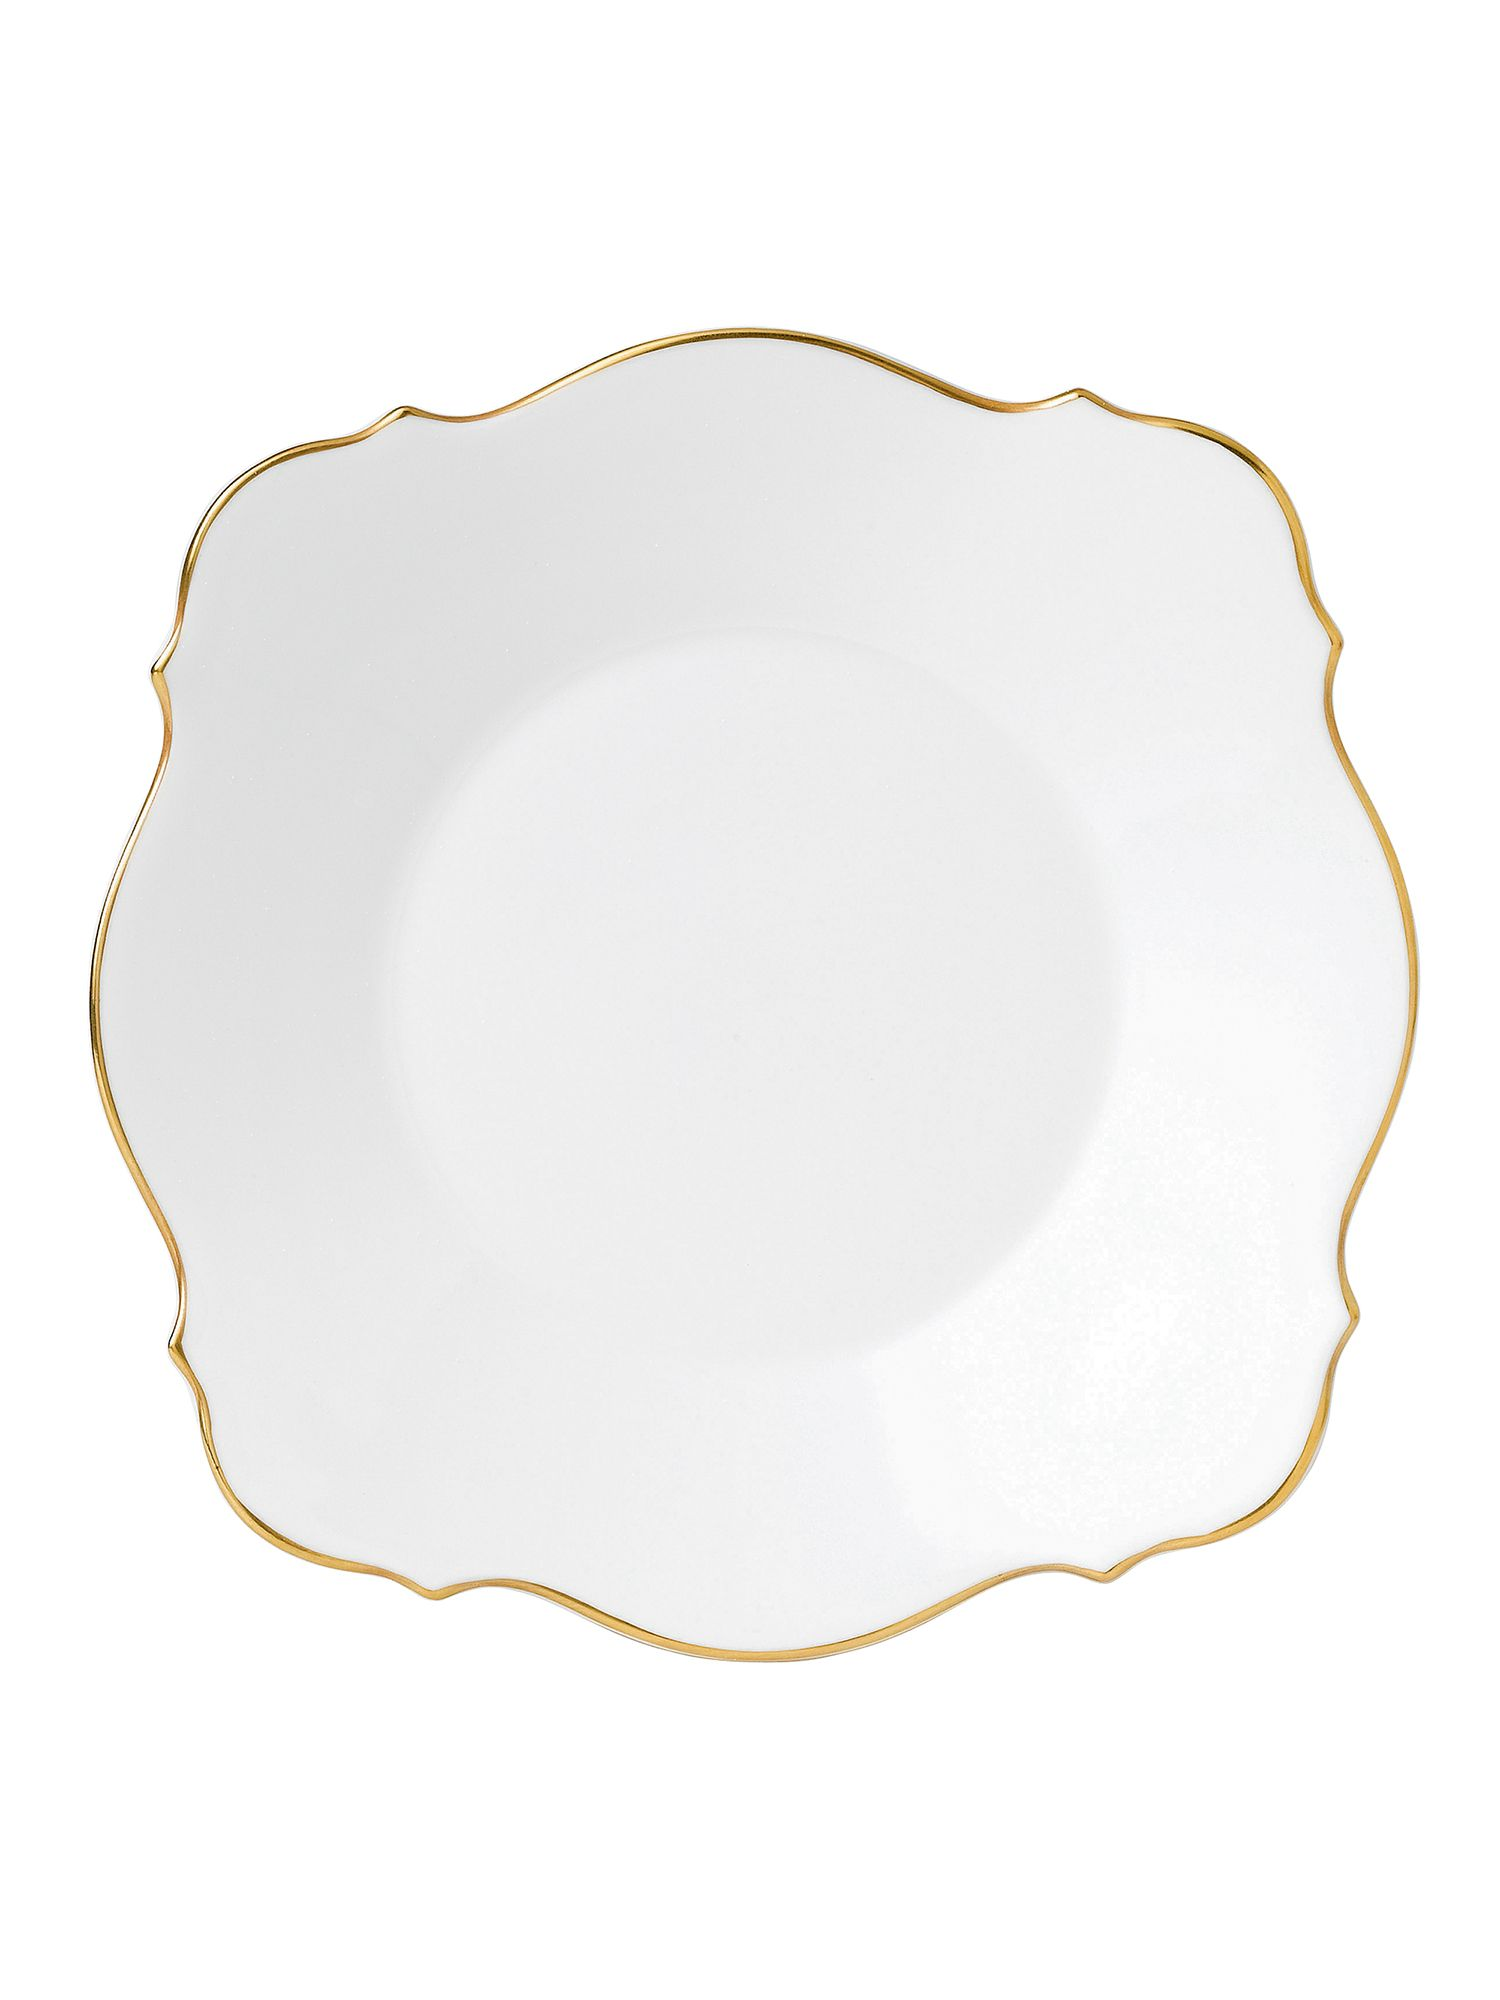 Jasper conran bone china gold tipped baroque plat